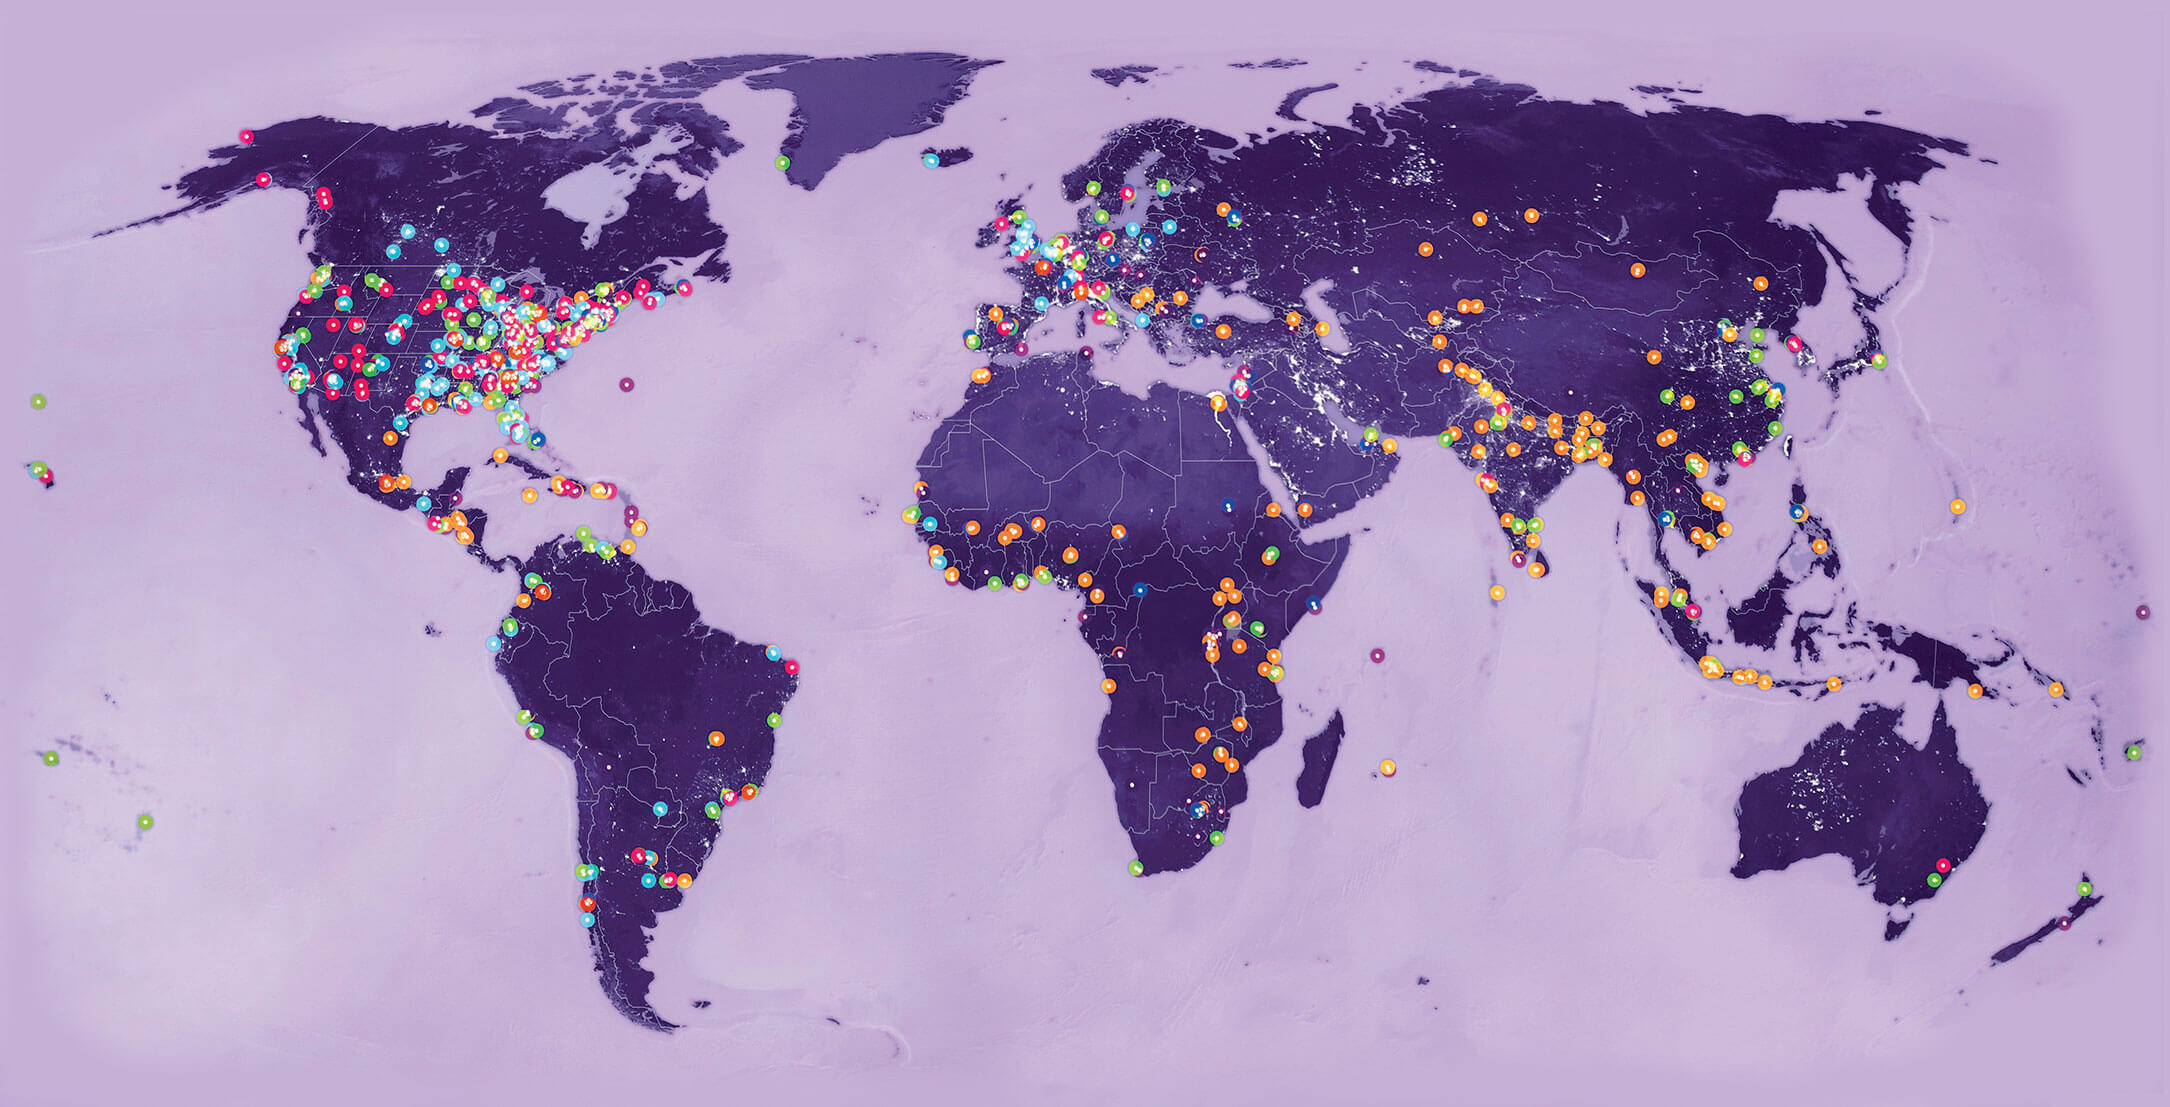 Bloomberg Philanthropies Invests In 510 Cities And 129 Countries Around The World.